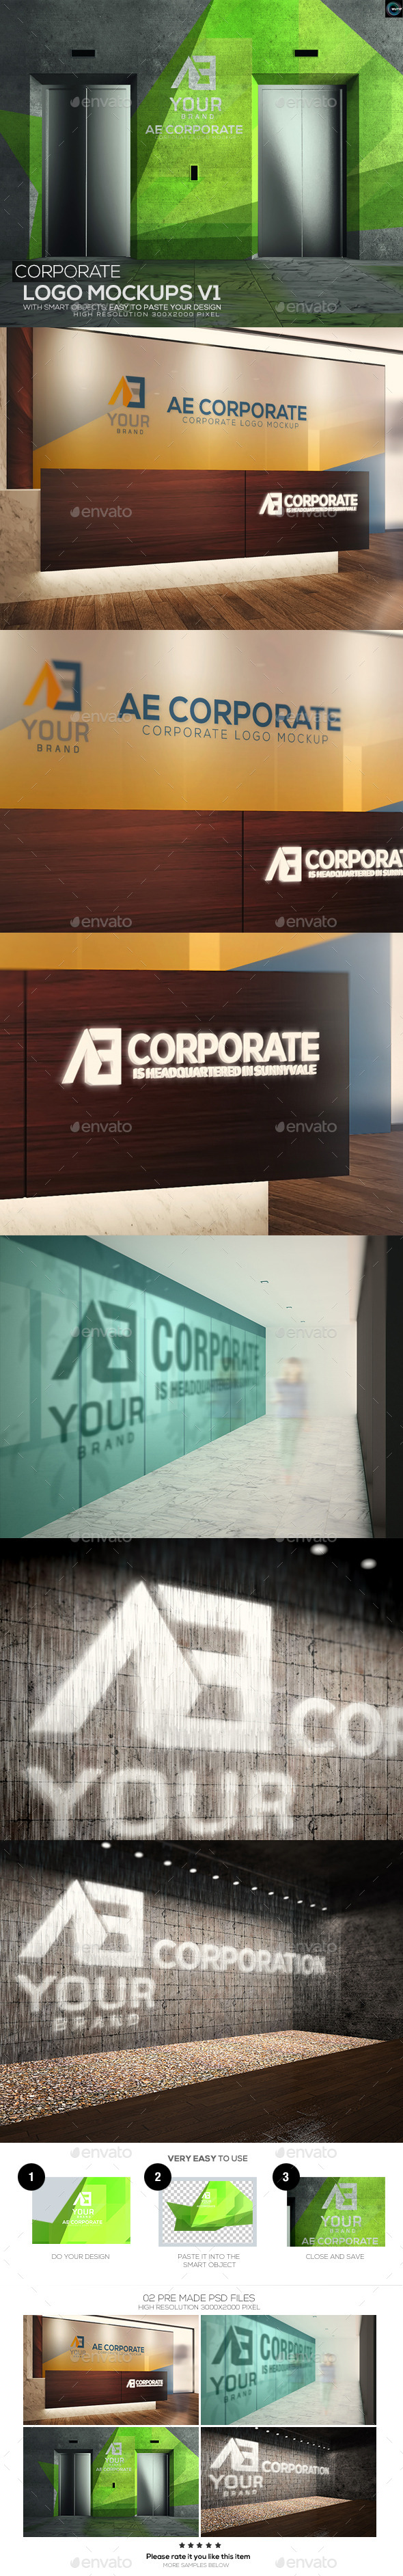 GraphicRiver Corporate Logo Mockups V1 11609562